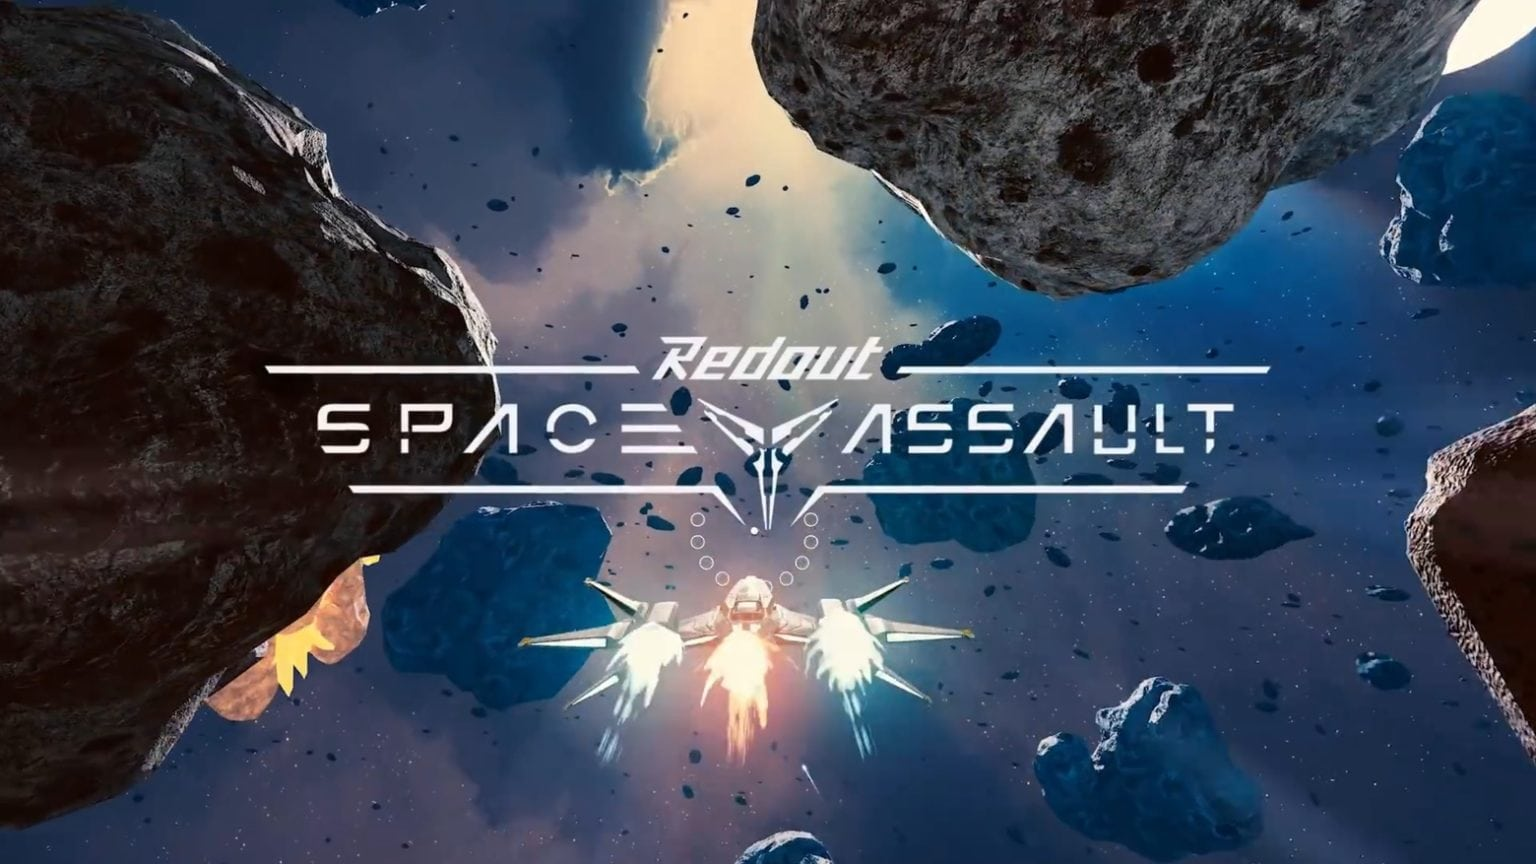 Redout: Space Assault is one of the best titles on Apple Arcade.